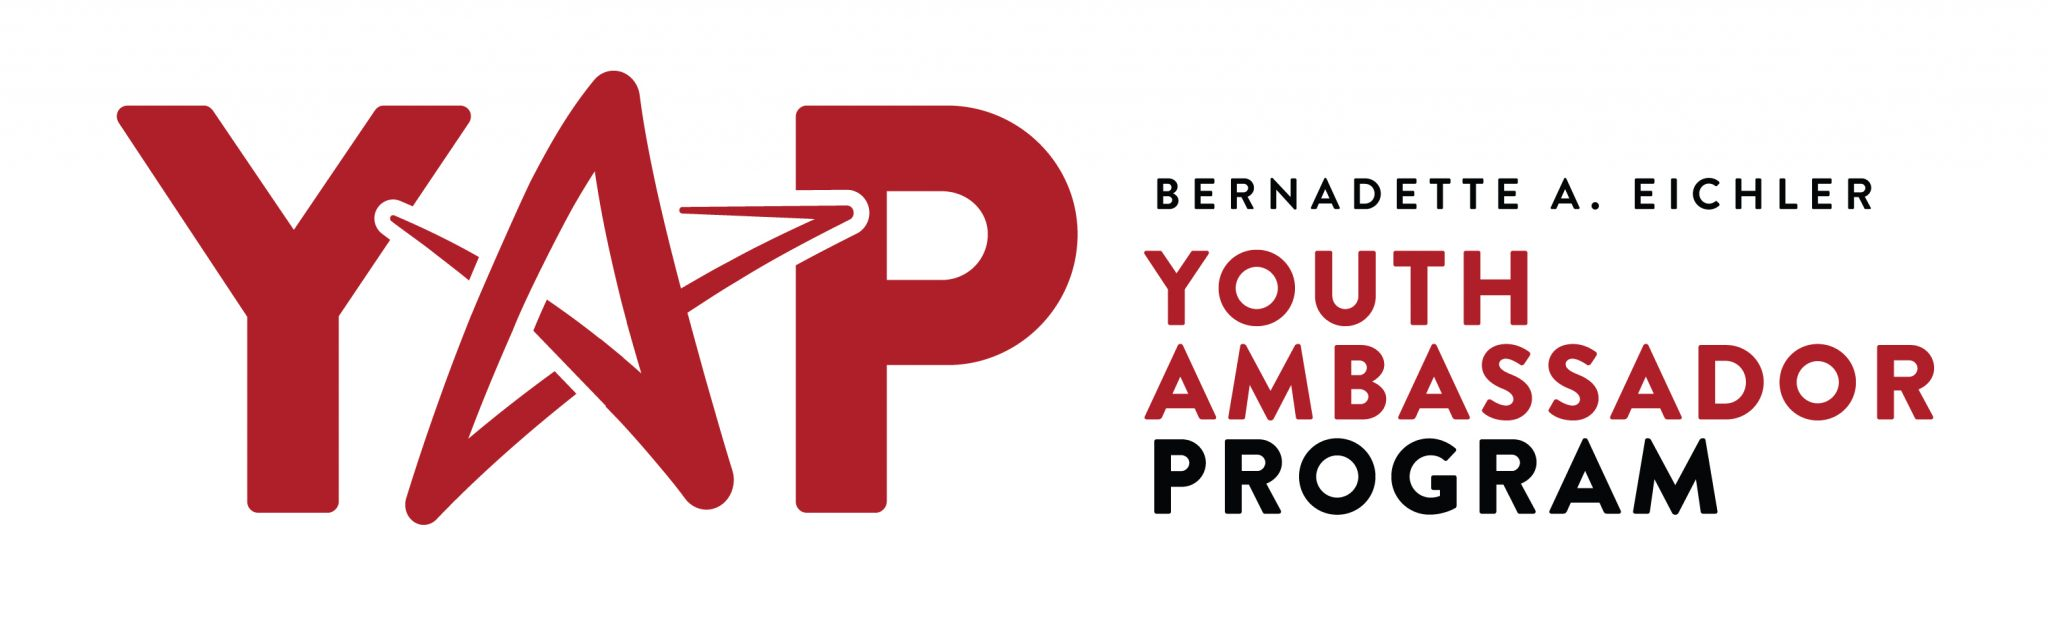 Youth Ambassador Program Now Accepting Applications